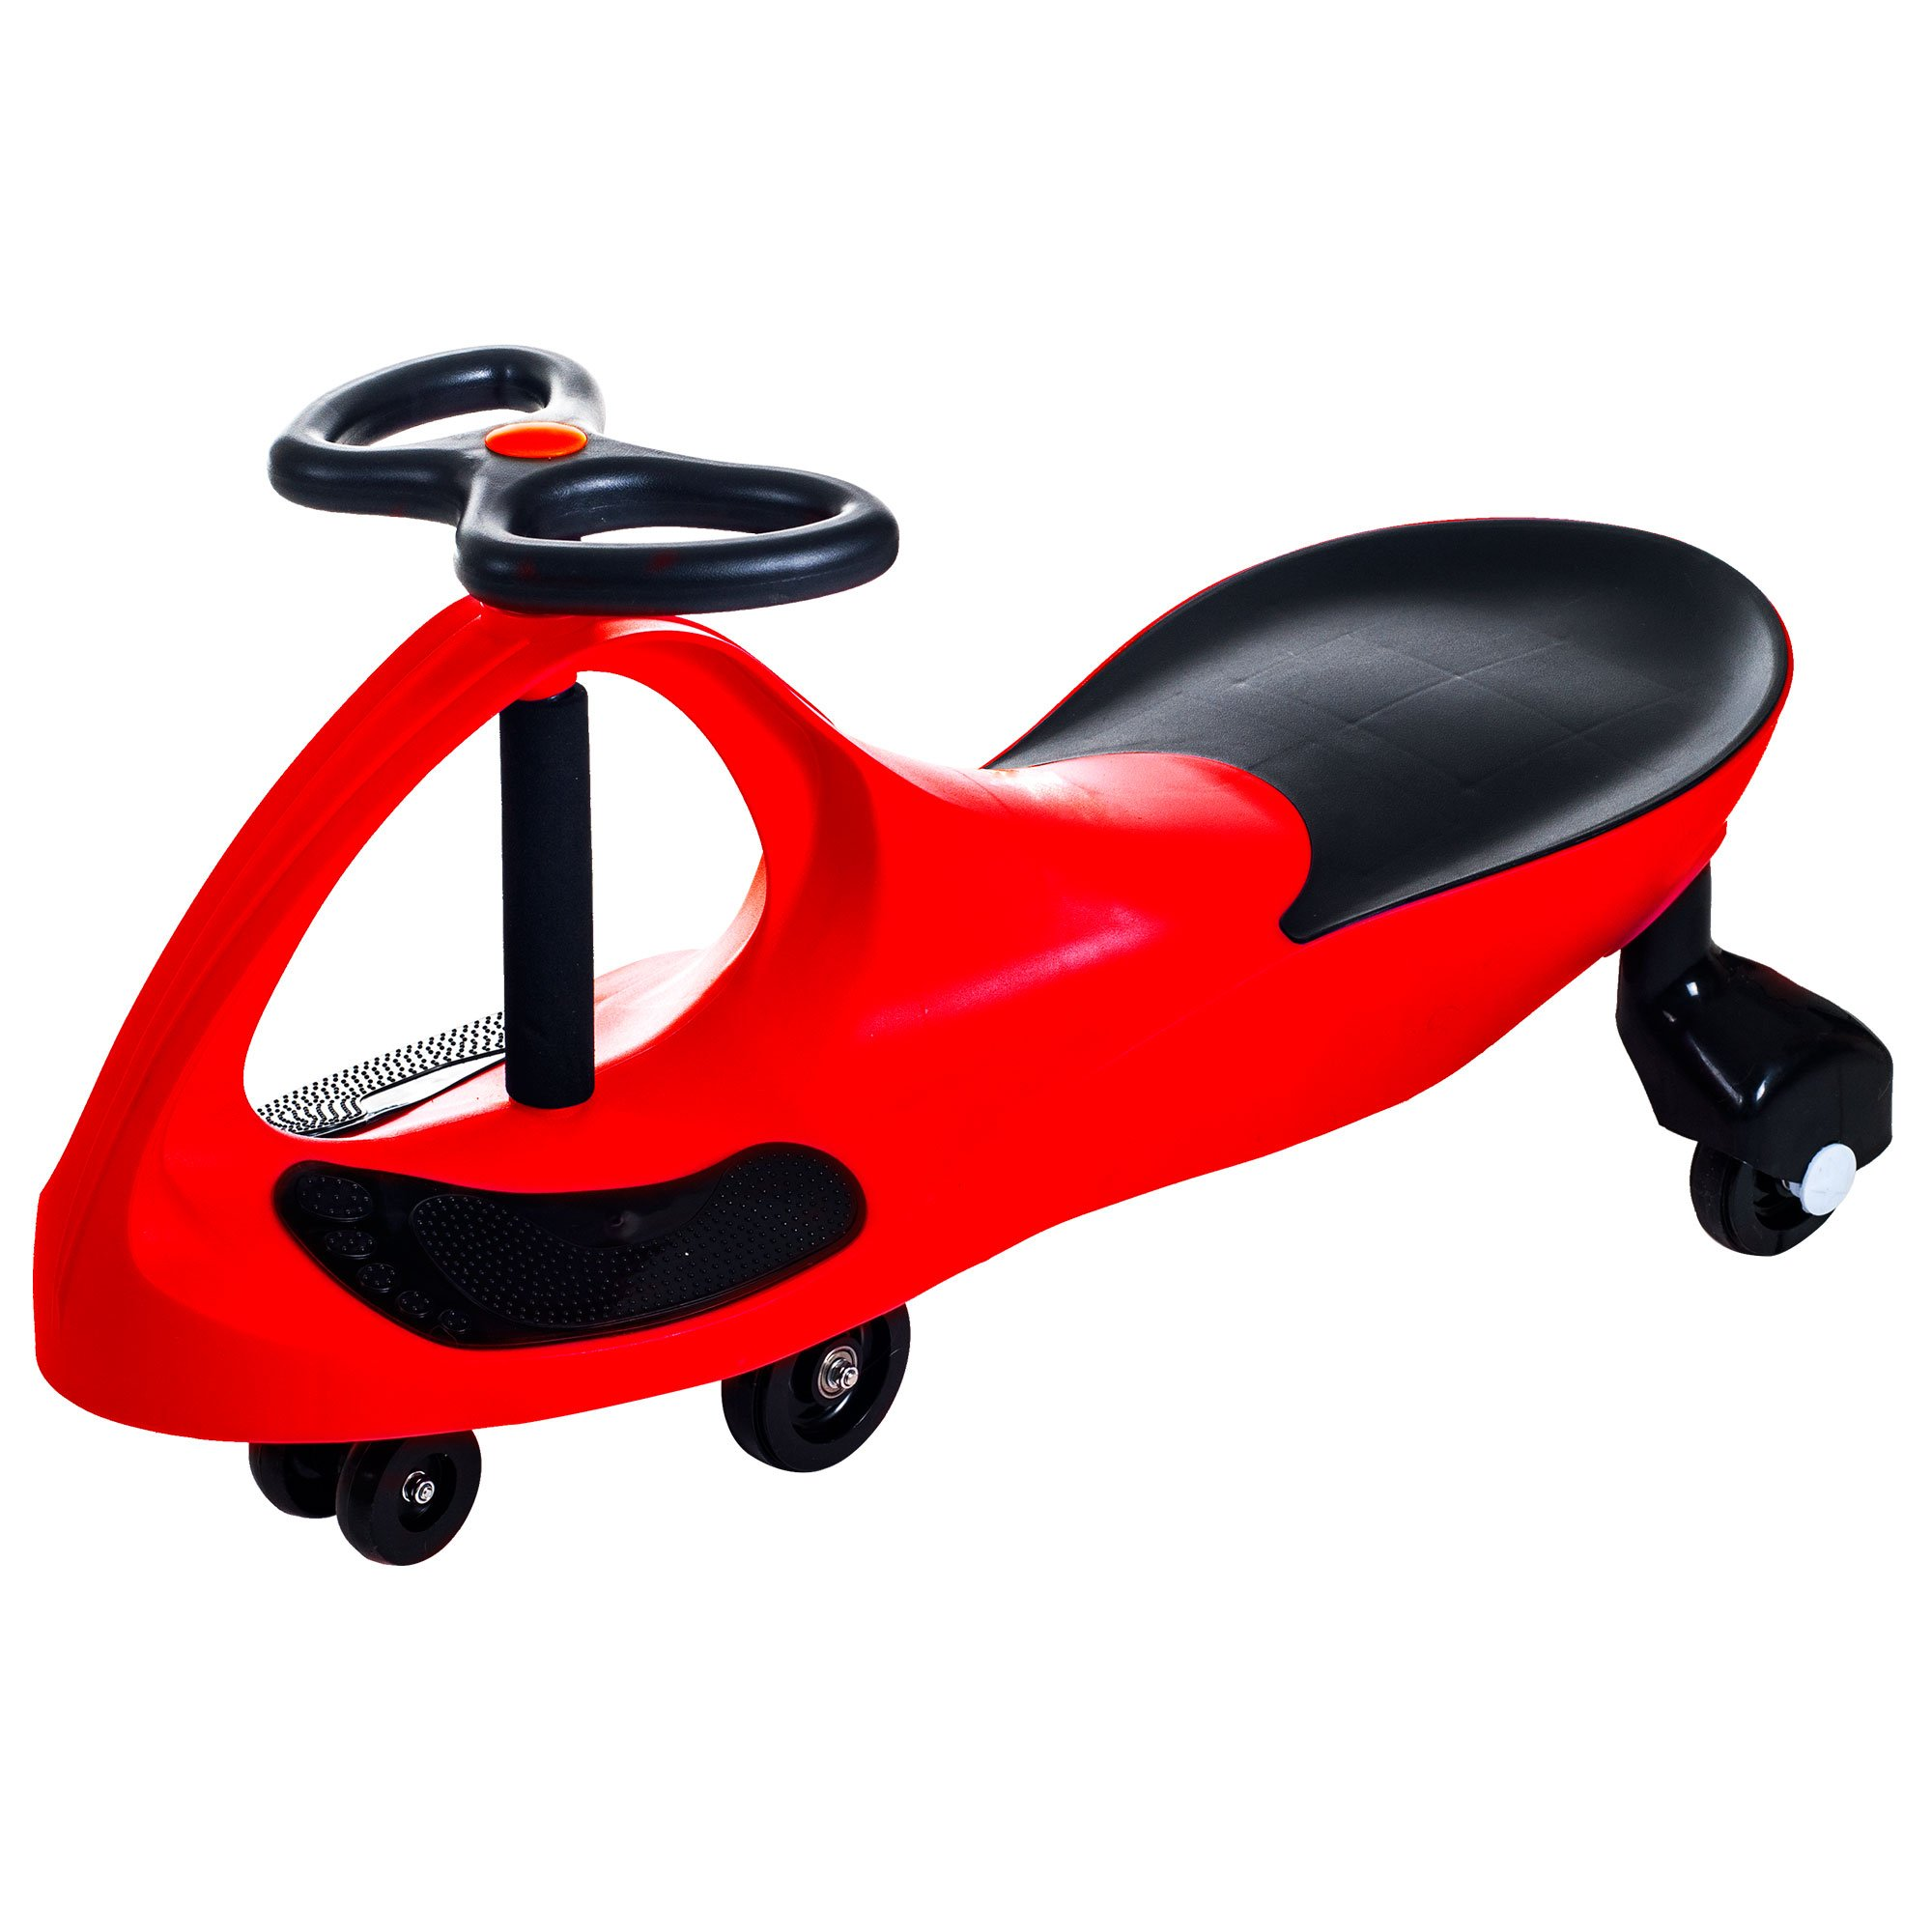 Ride on Toy, Ride on Wiggle Car by Lil' Rider - Ride on Toys for Boys and Girls, 2 Year Old And Up, Red